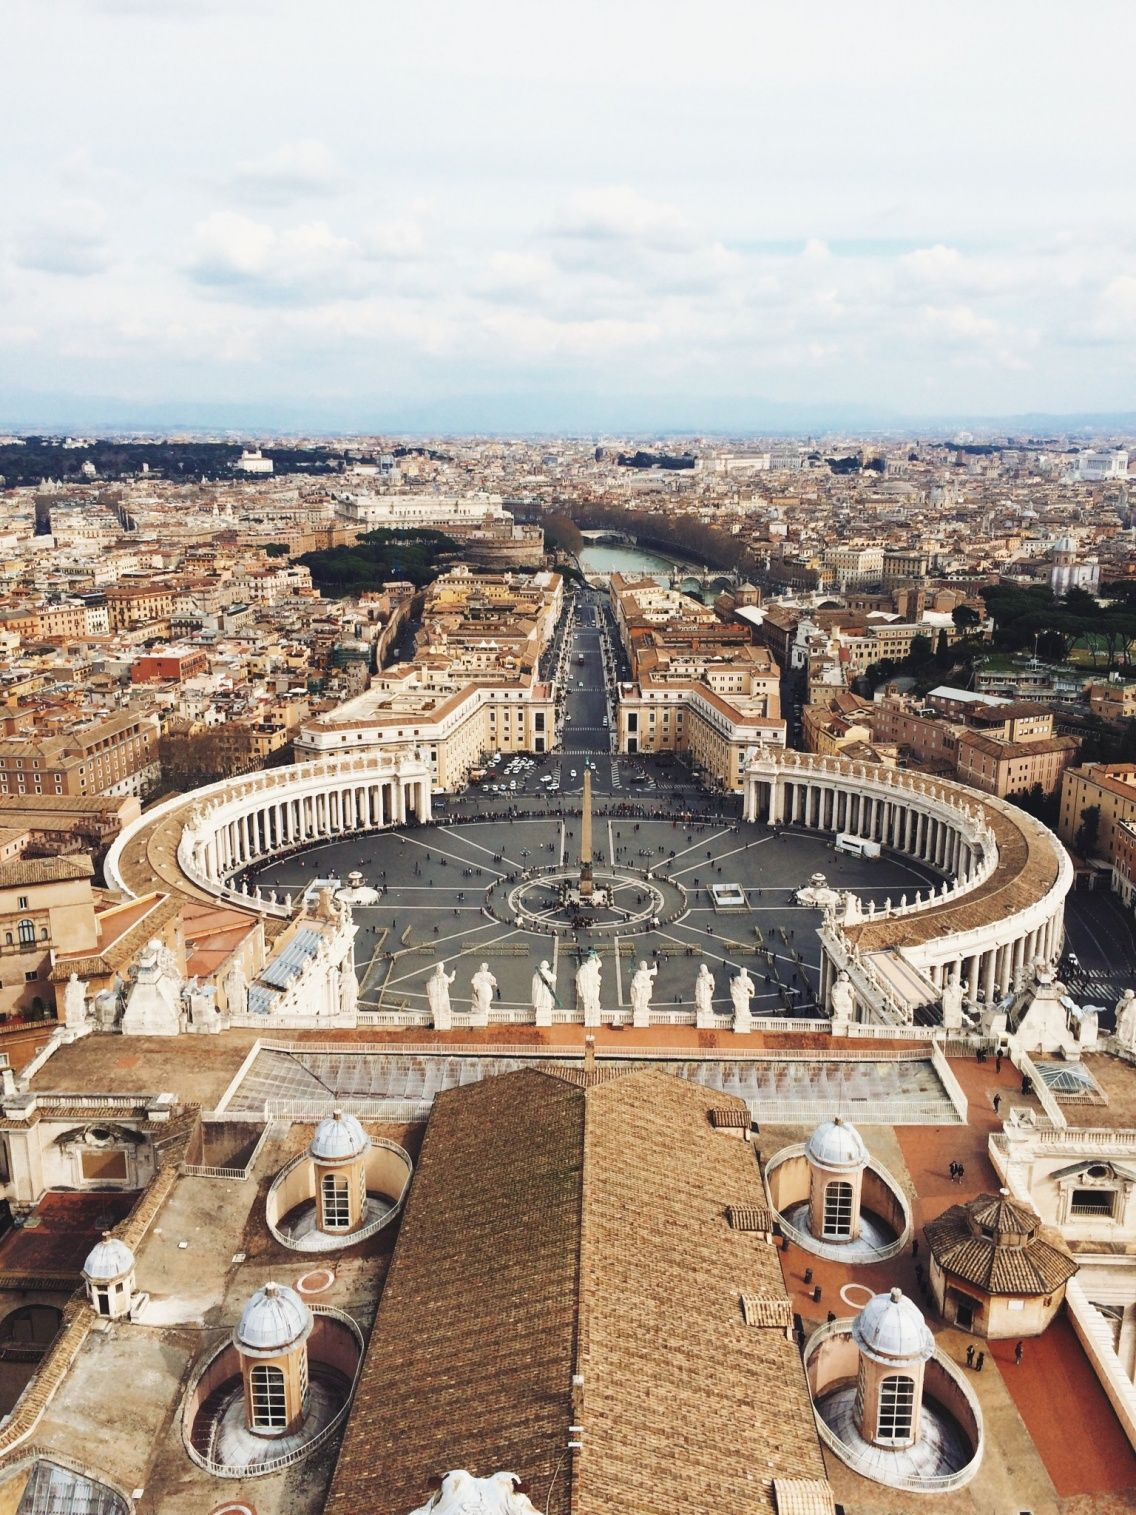 Vatican, Italy / photo by venedie